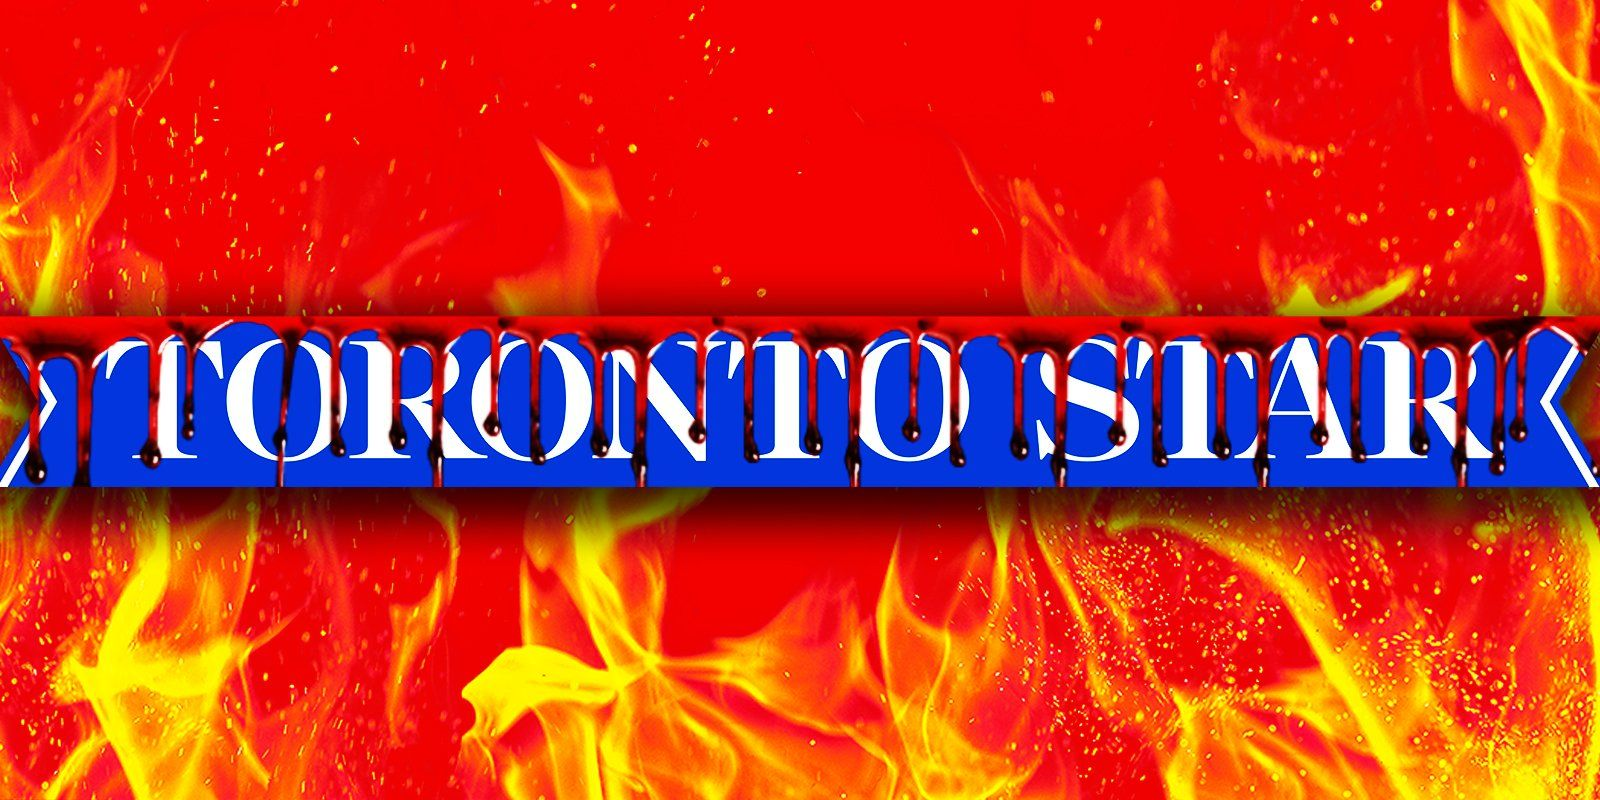 Toronto Star fires 85 workers, while execs still rake in $760,000